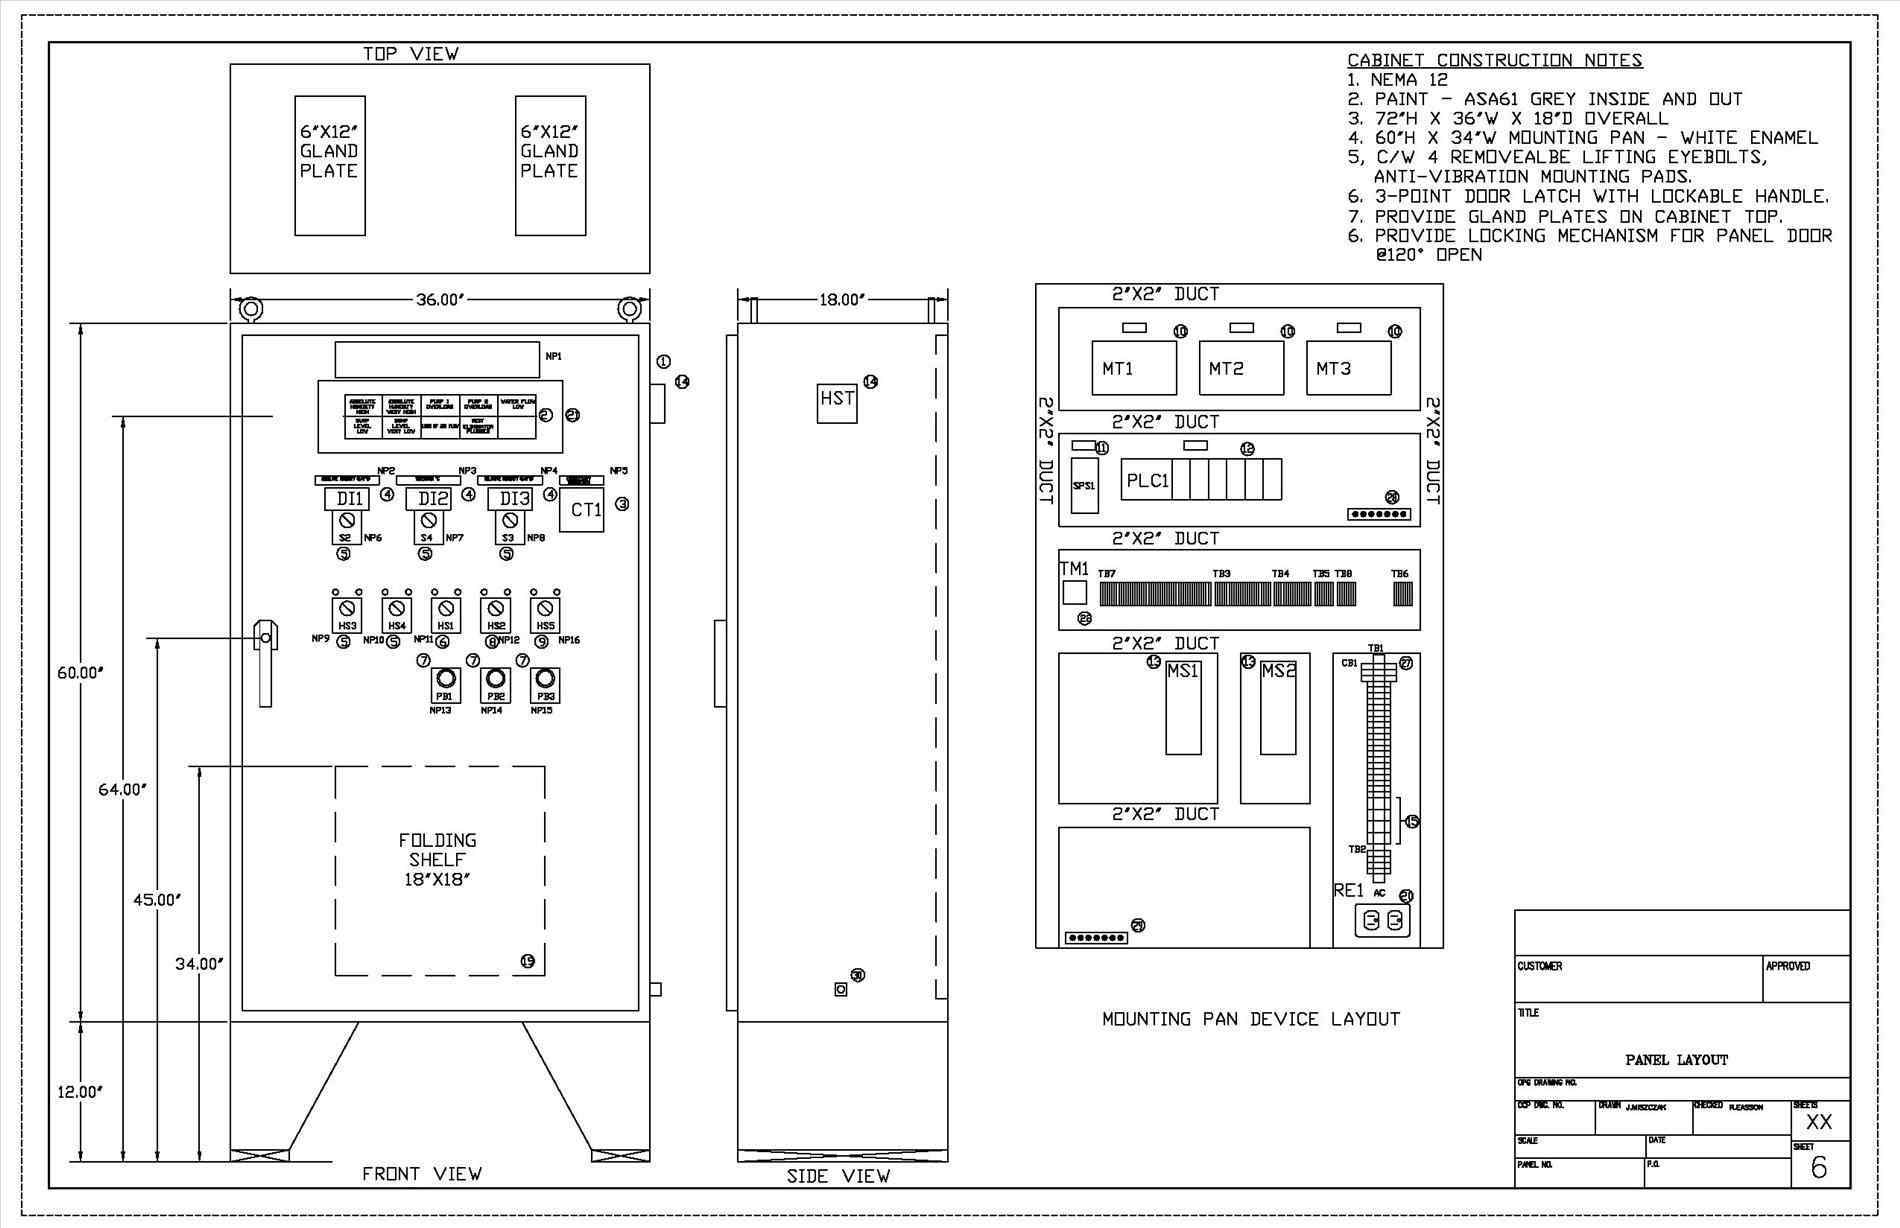 Hyundai Xg300 Fuse Box Diagram. Hyundai. Wiring Diagram Images